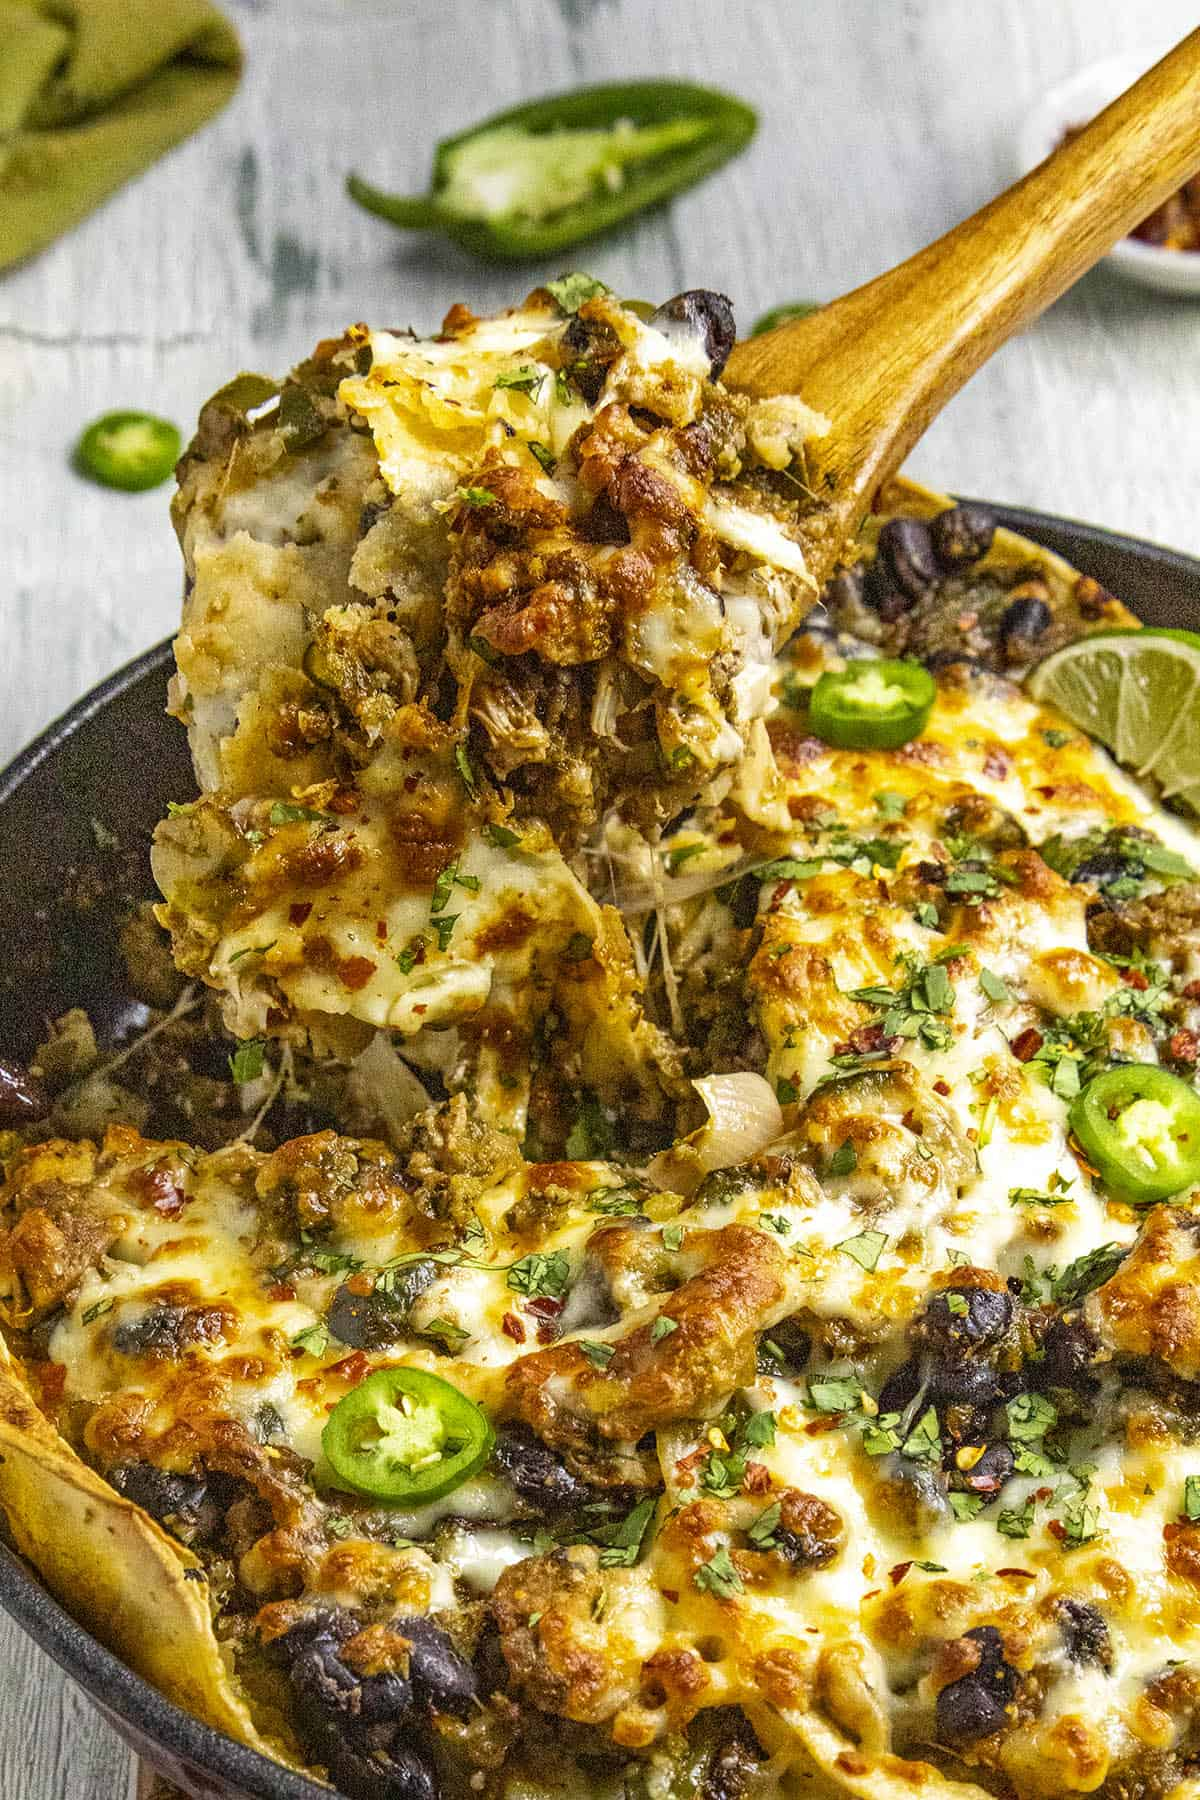 A scoop of my Chicken Enchilada Casserole Verde Recipe